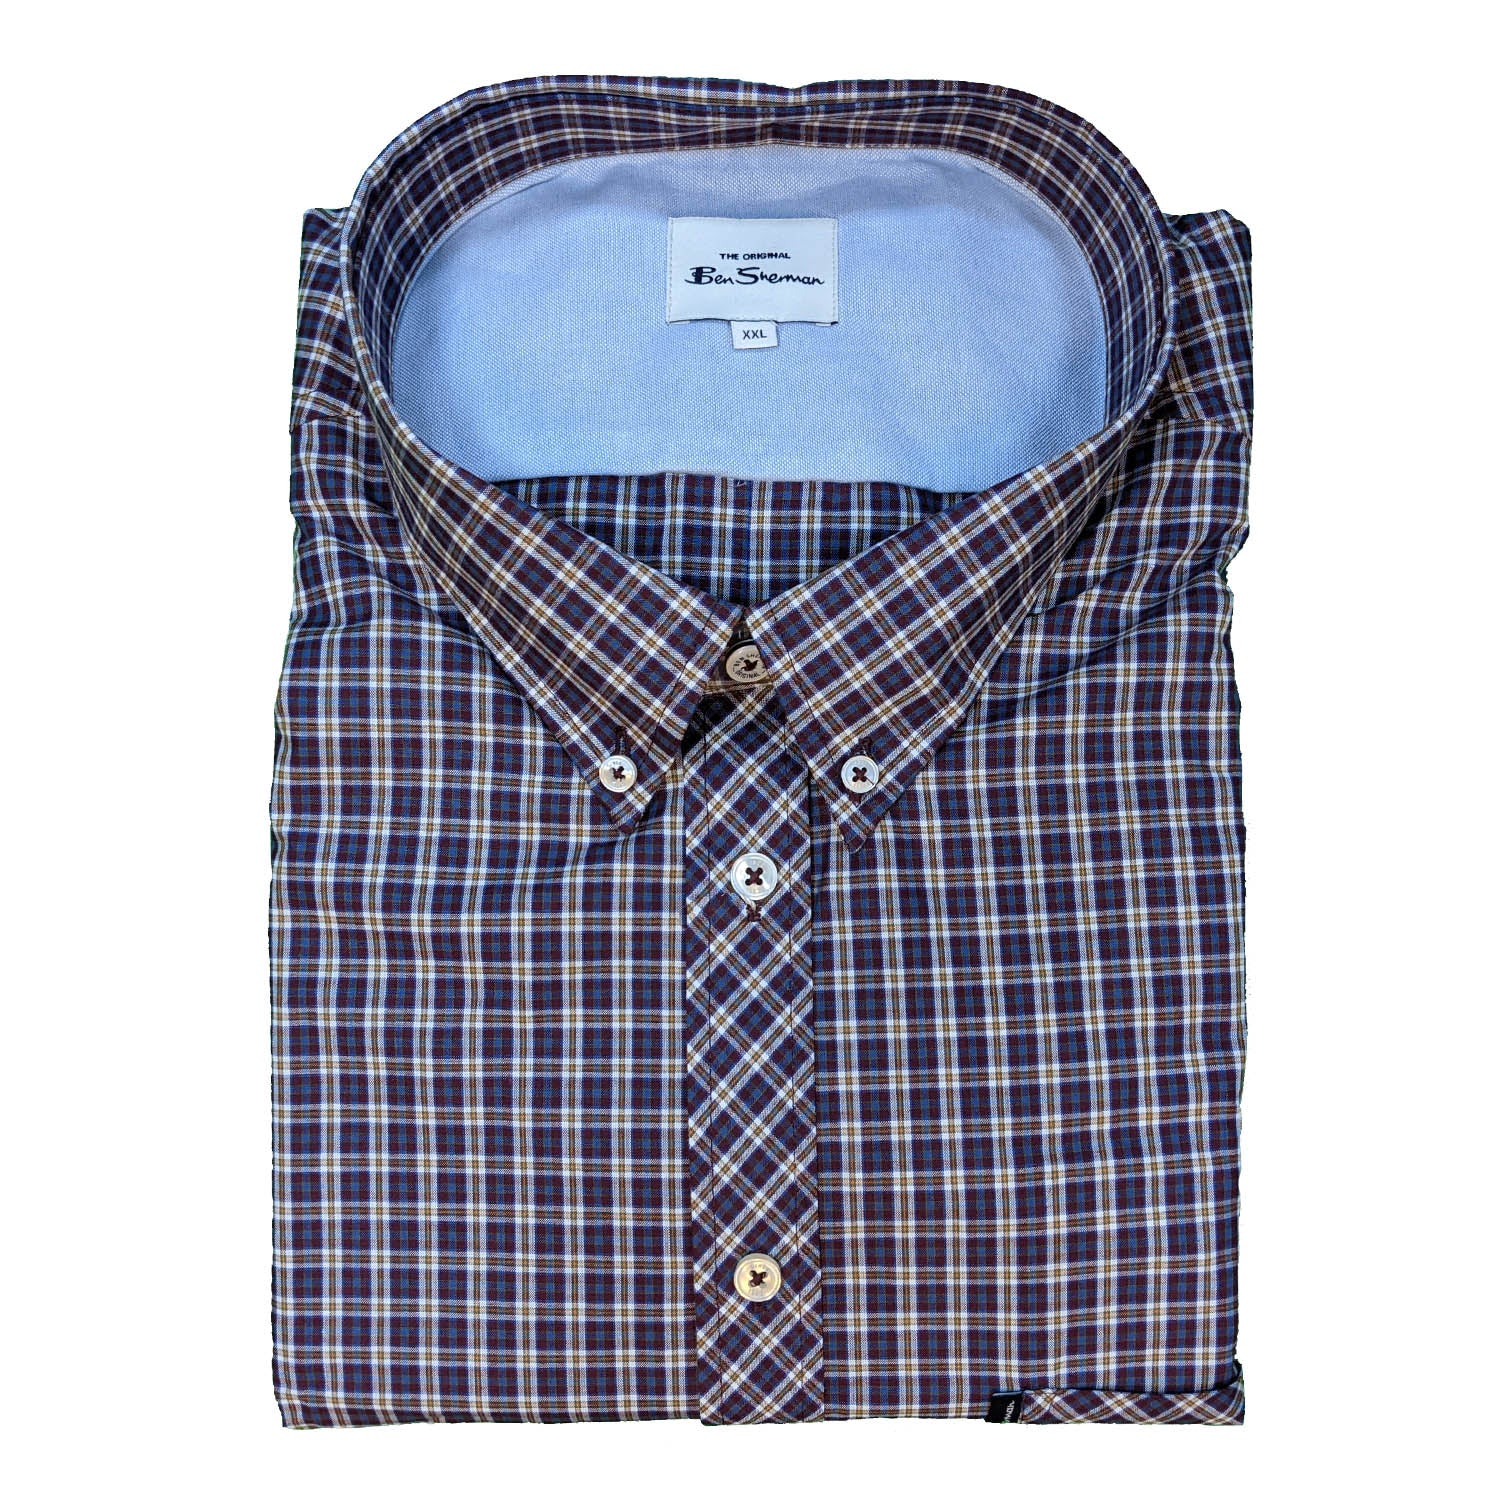 Ben Sherman L/S Shirt - 0061433IL - Port 1